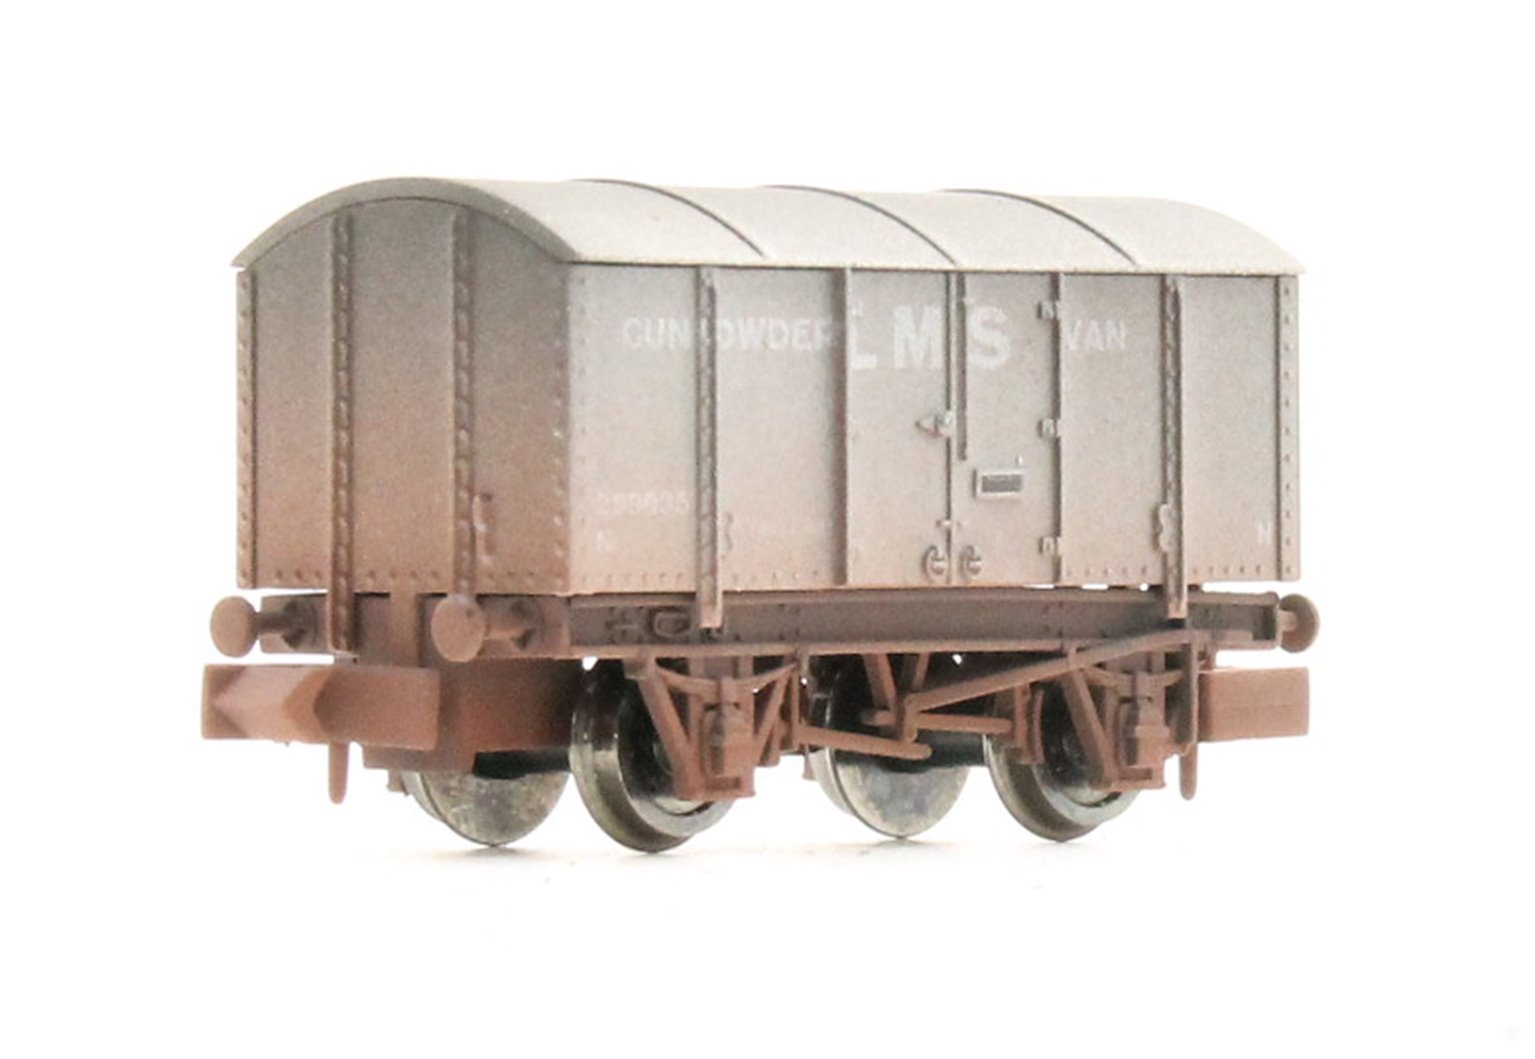 4-wheel Gunpowder Van 299035 in LMS Grey - weathered